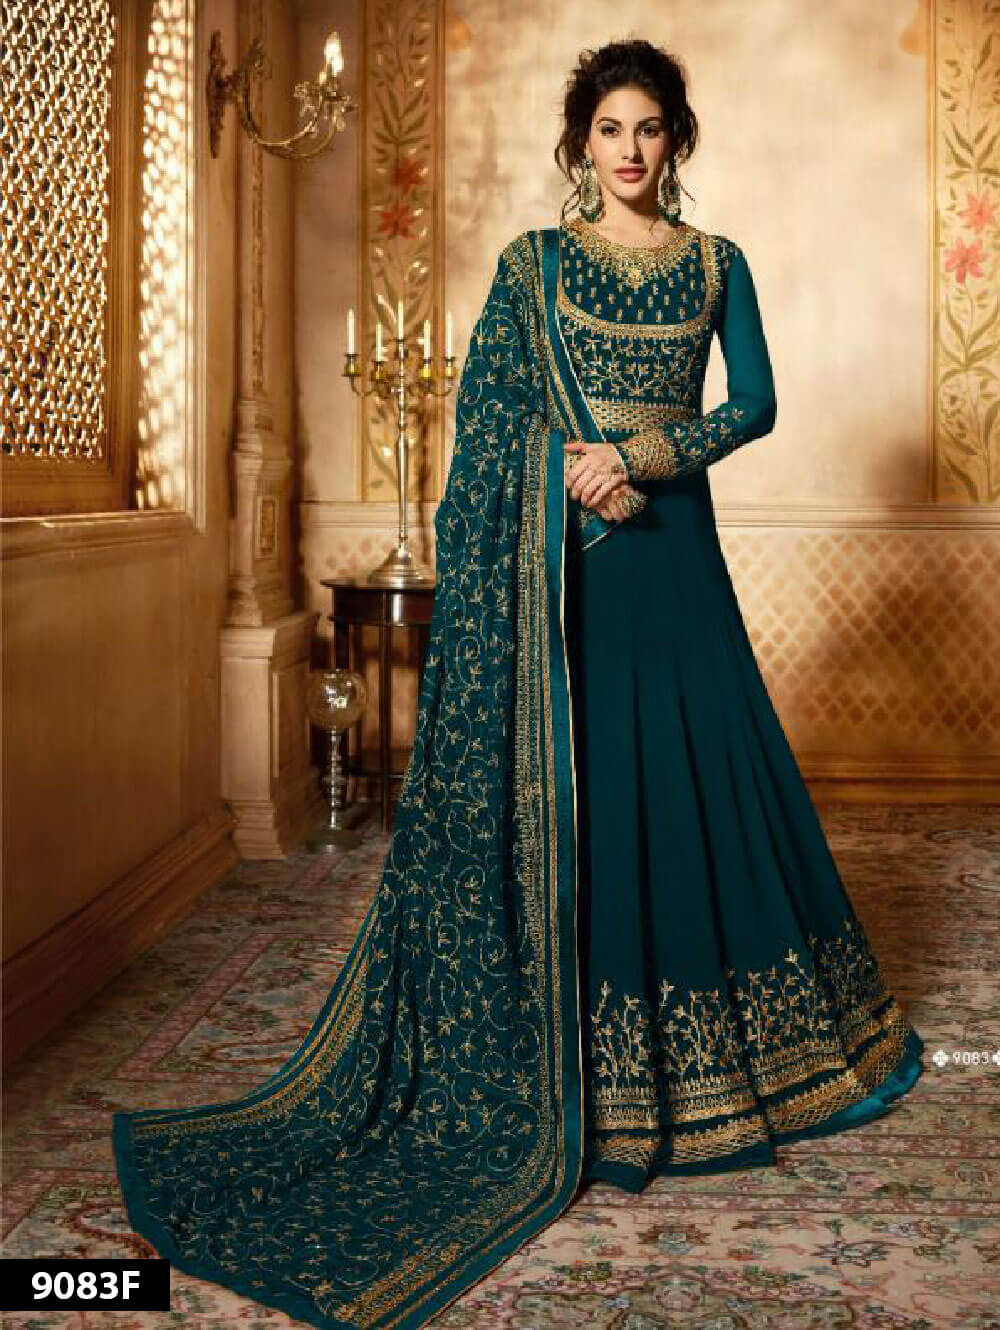 9083F Rama Green Designer Faux Georgette Anarkali Replica Suit